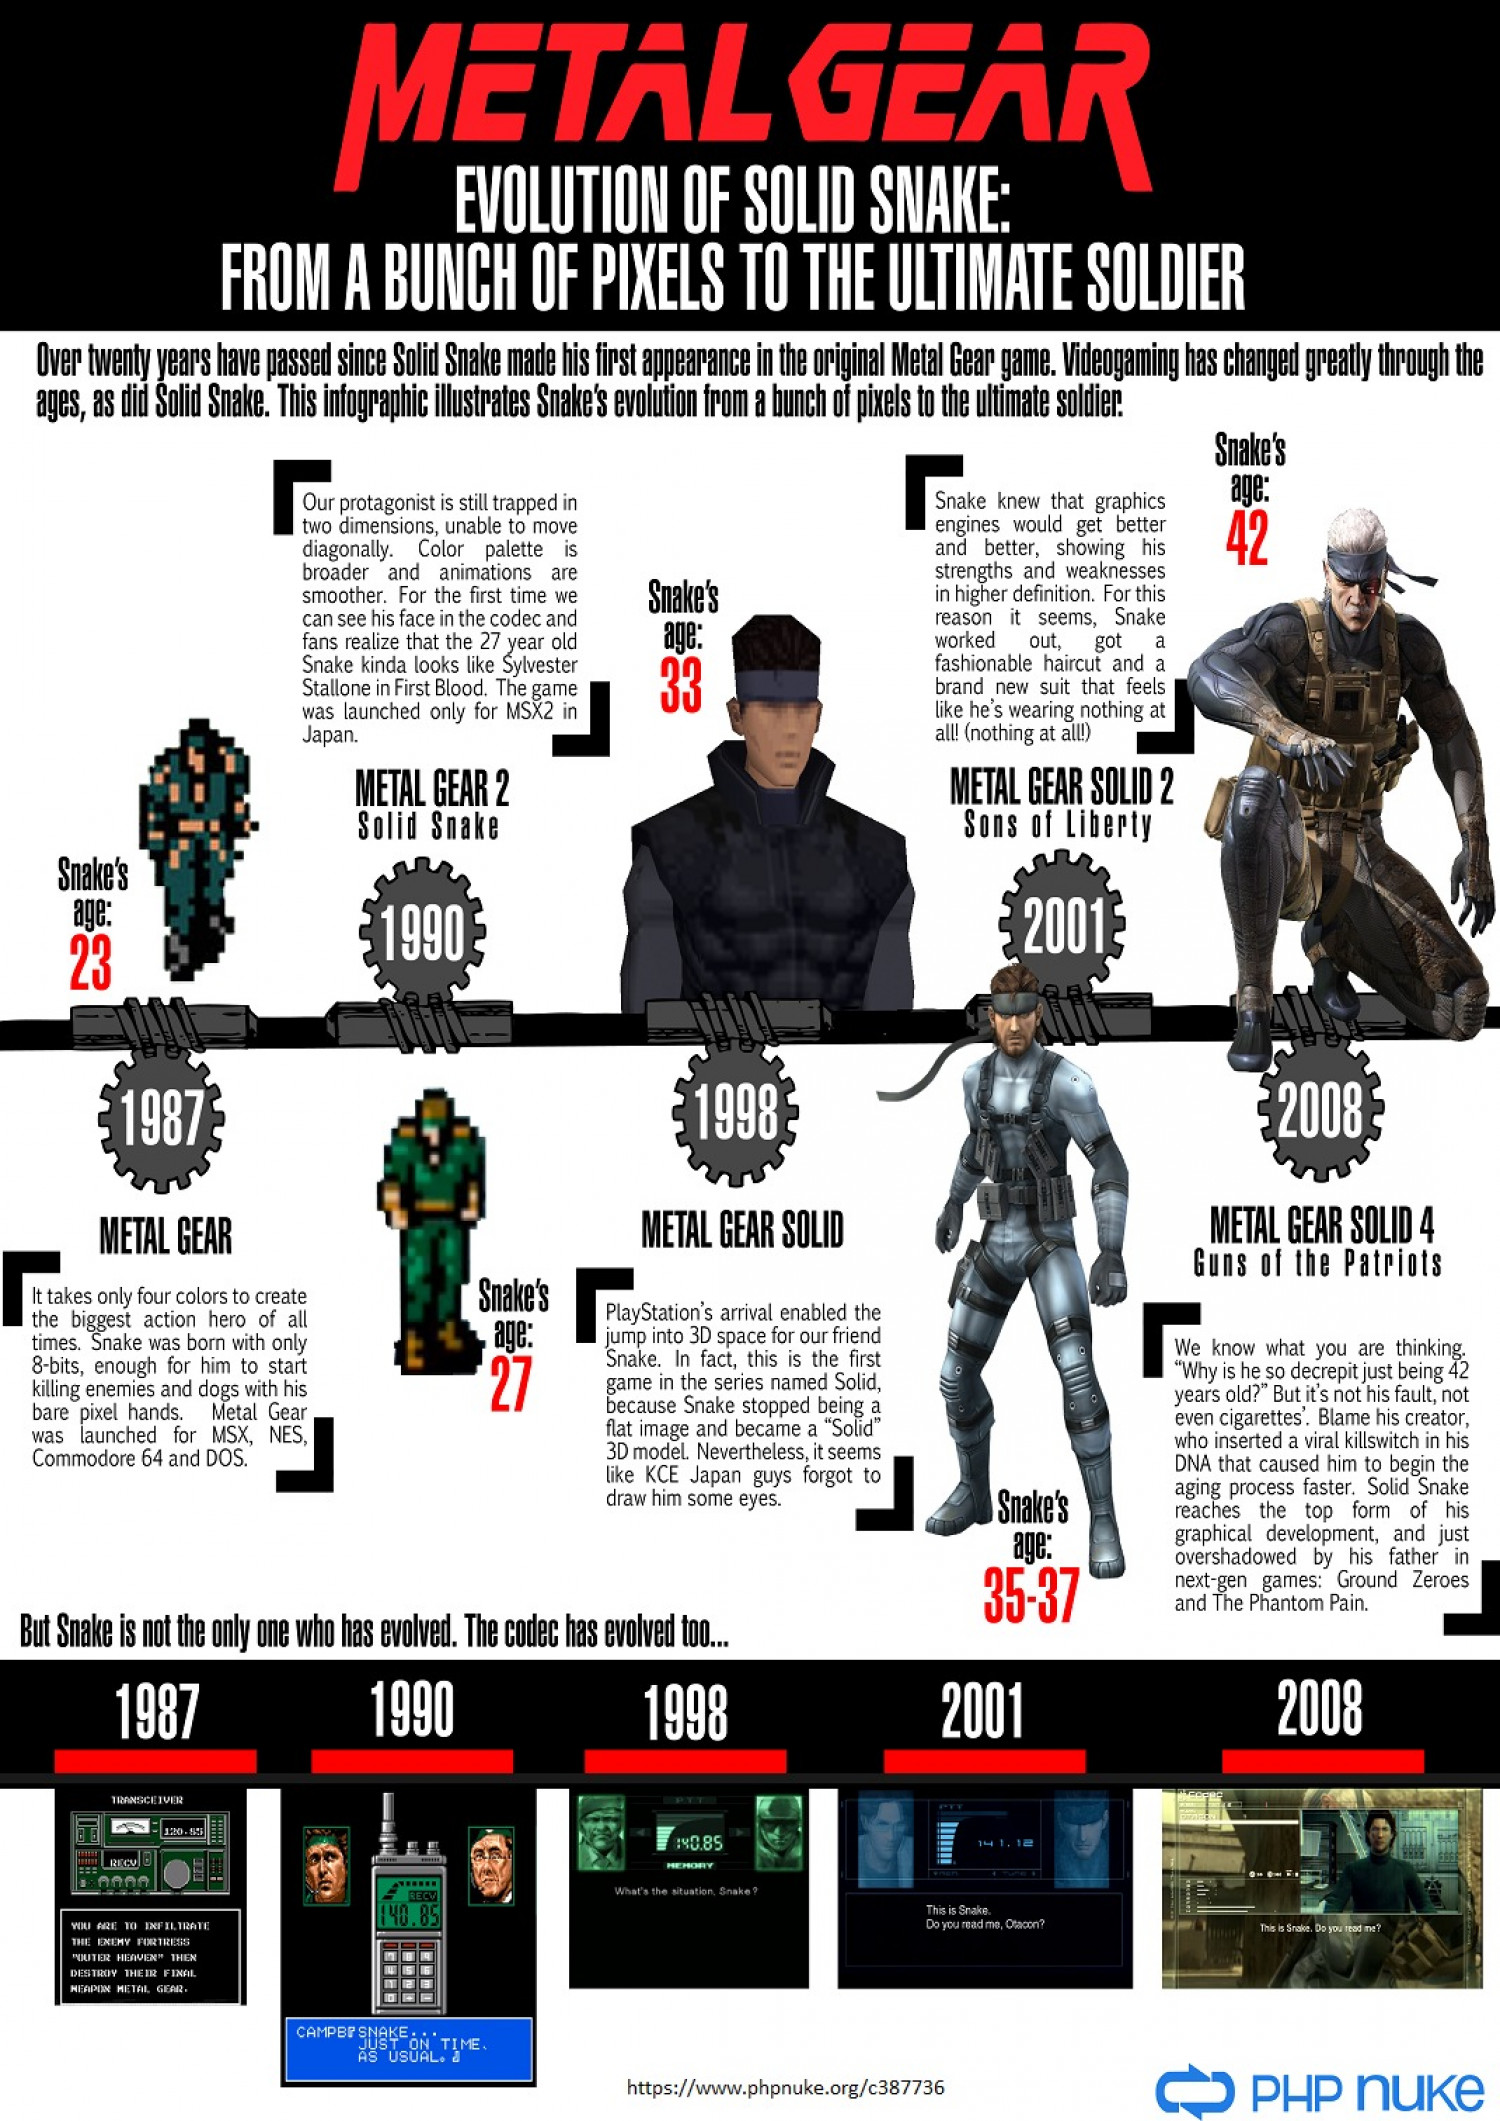 Metal Gear: The evolution of Solid Snake Infographic